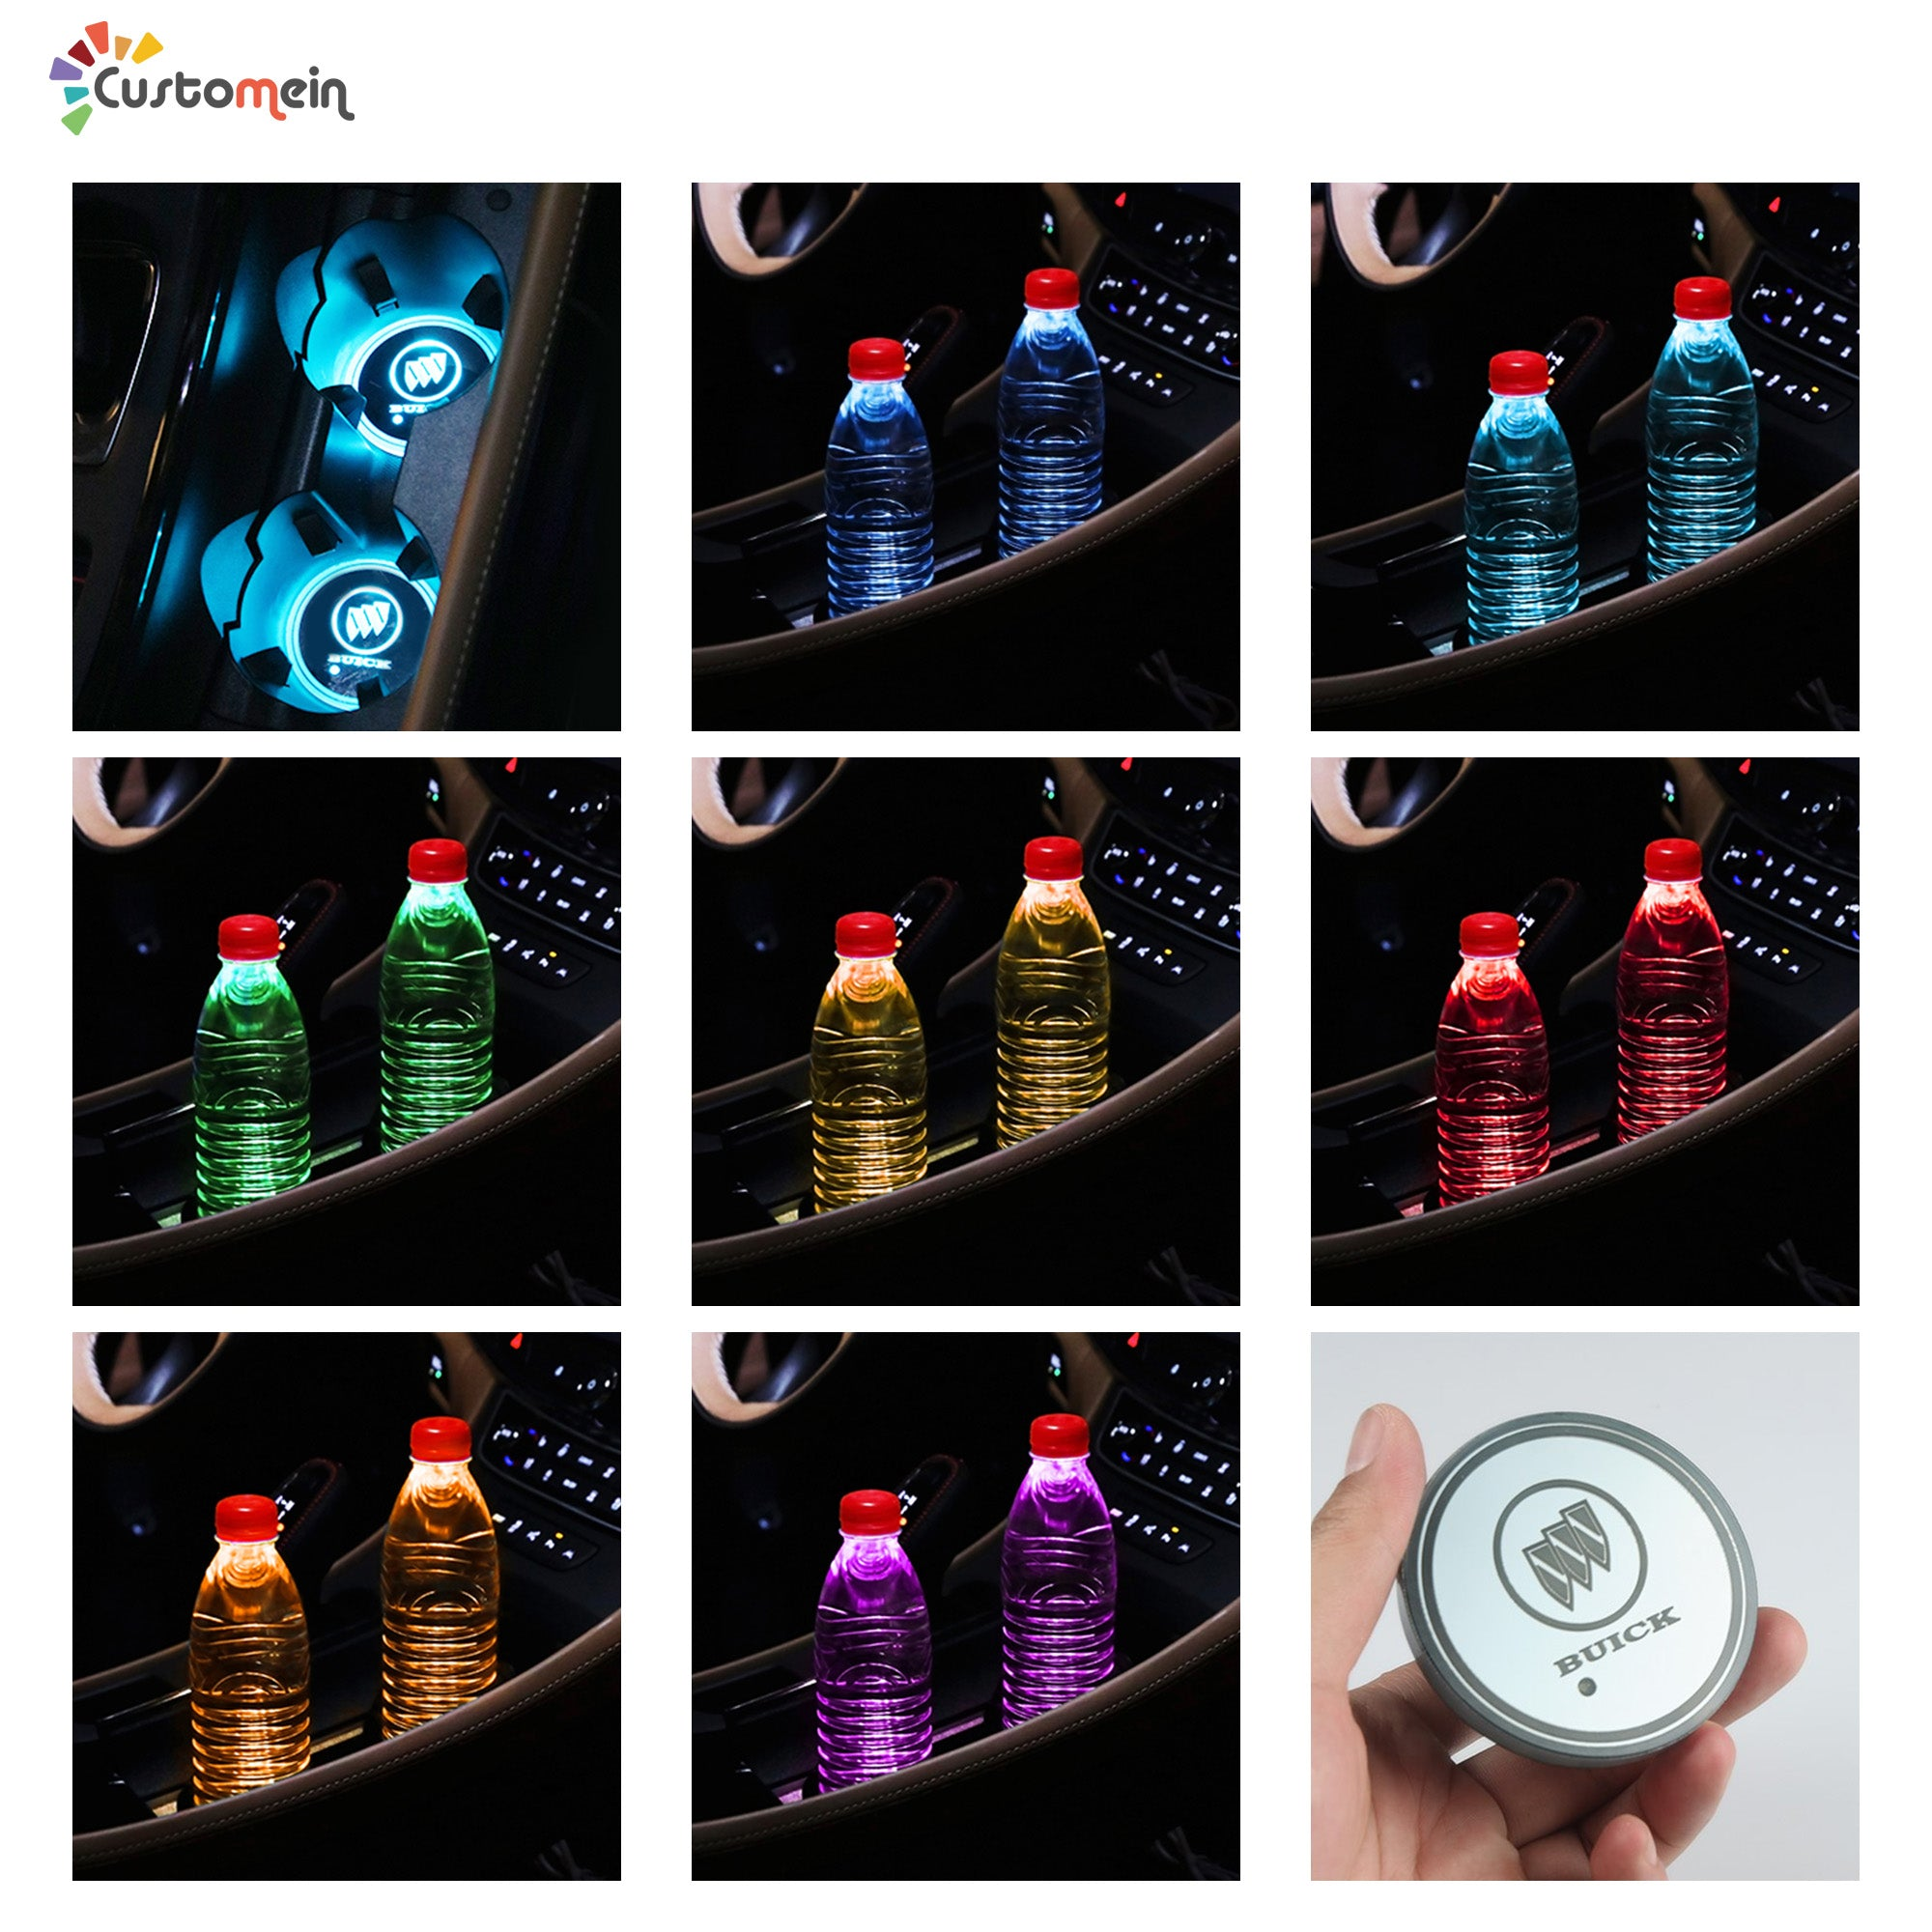 Custom Car Cup Holder LED Lights (1 PC)